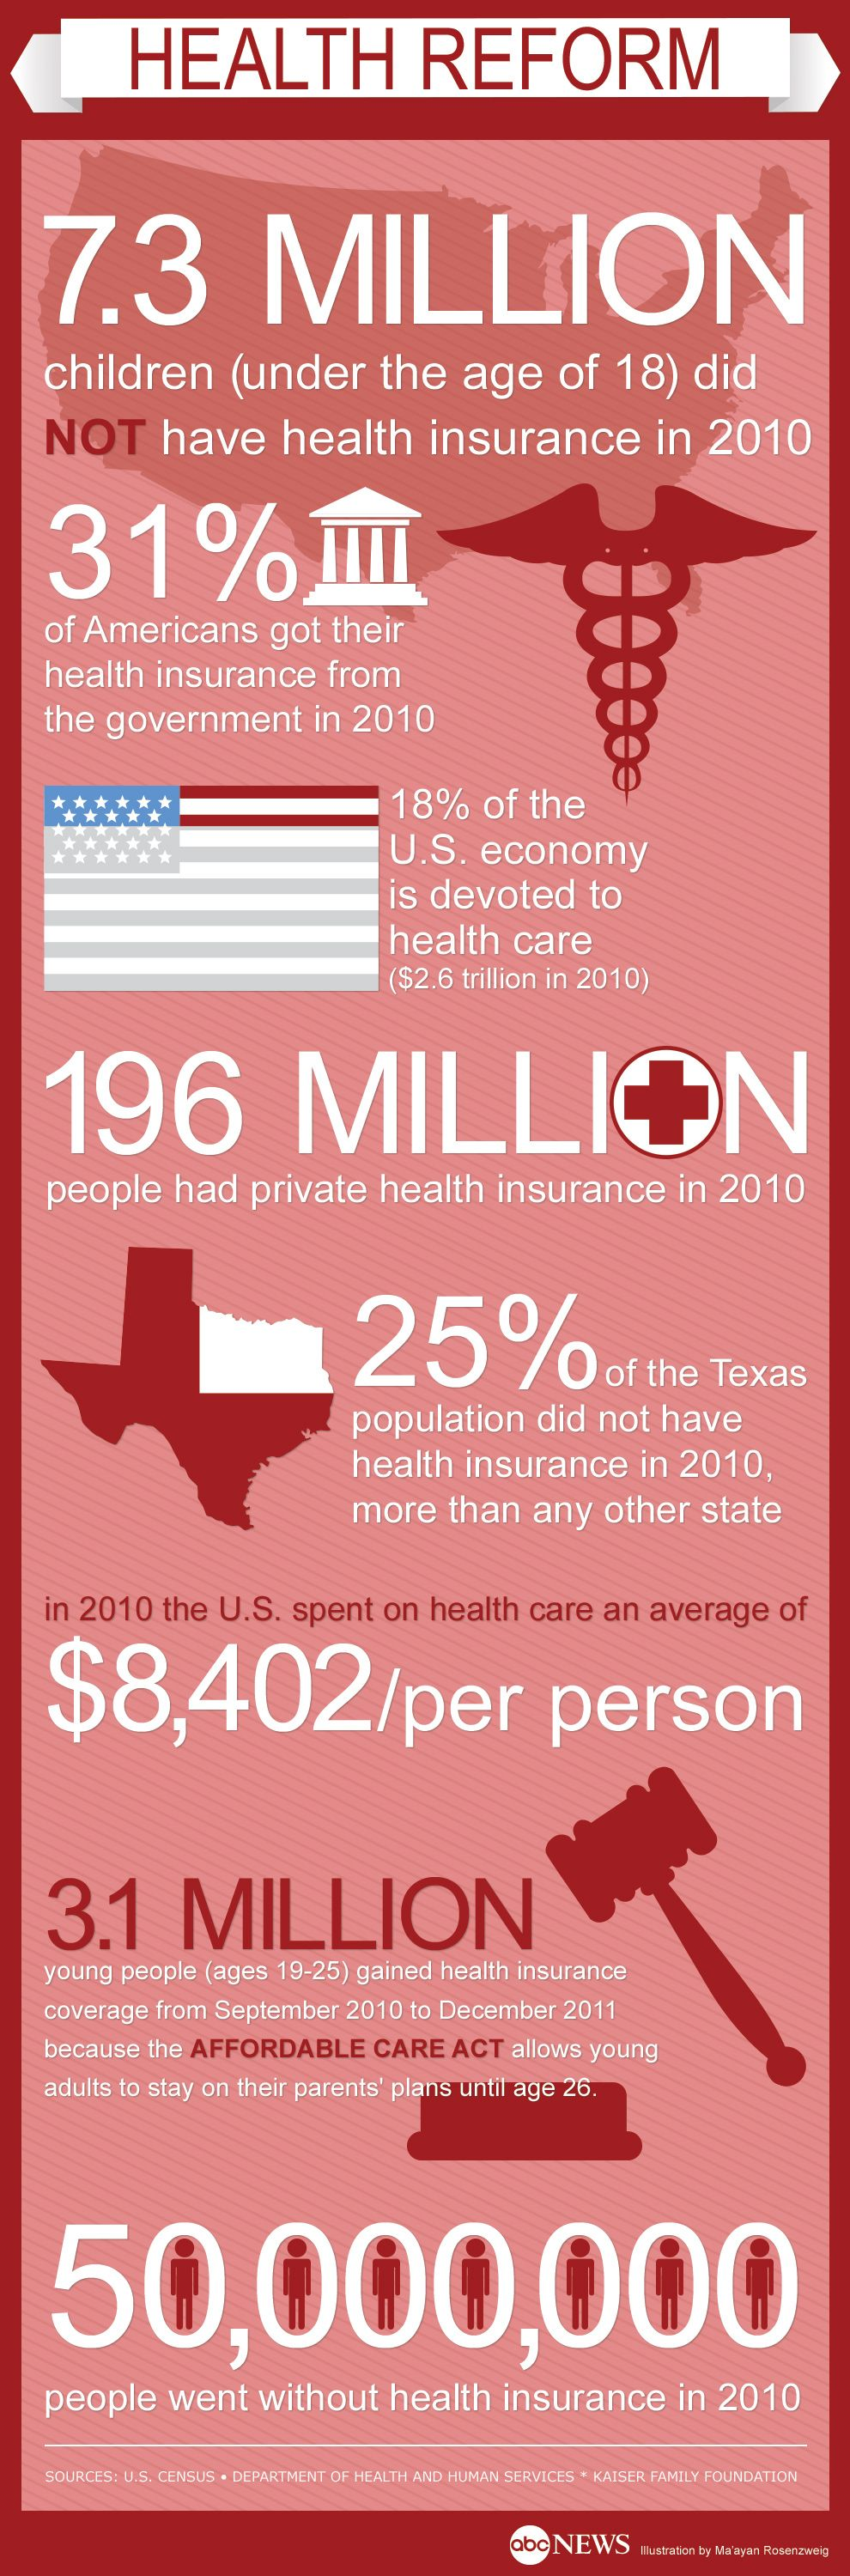 Health Care By the Numbers Health care, Health, Private